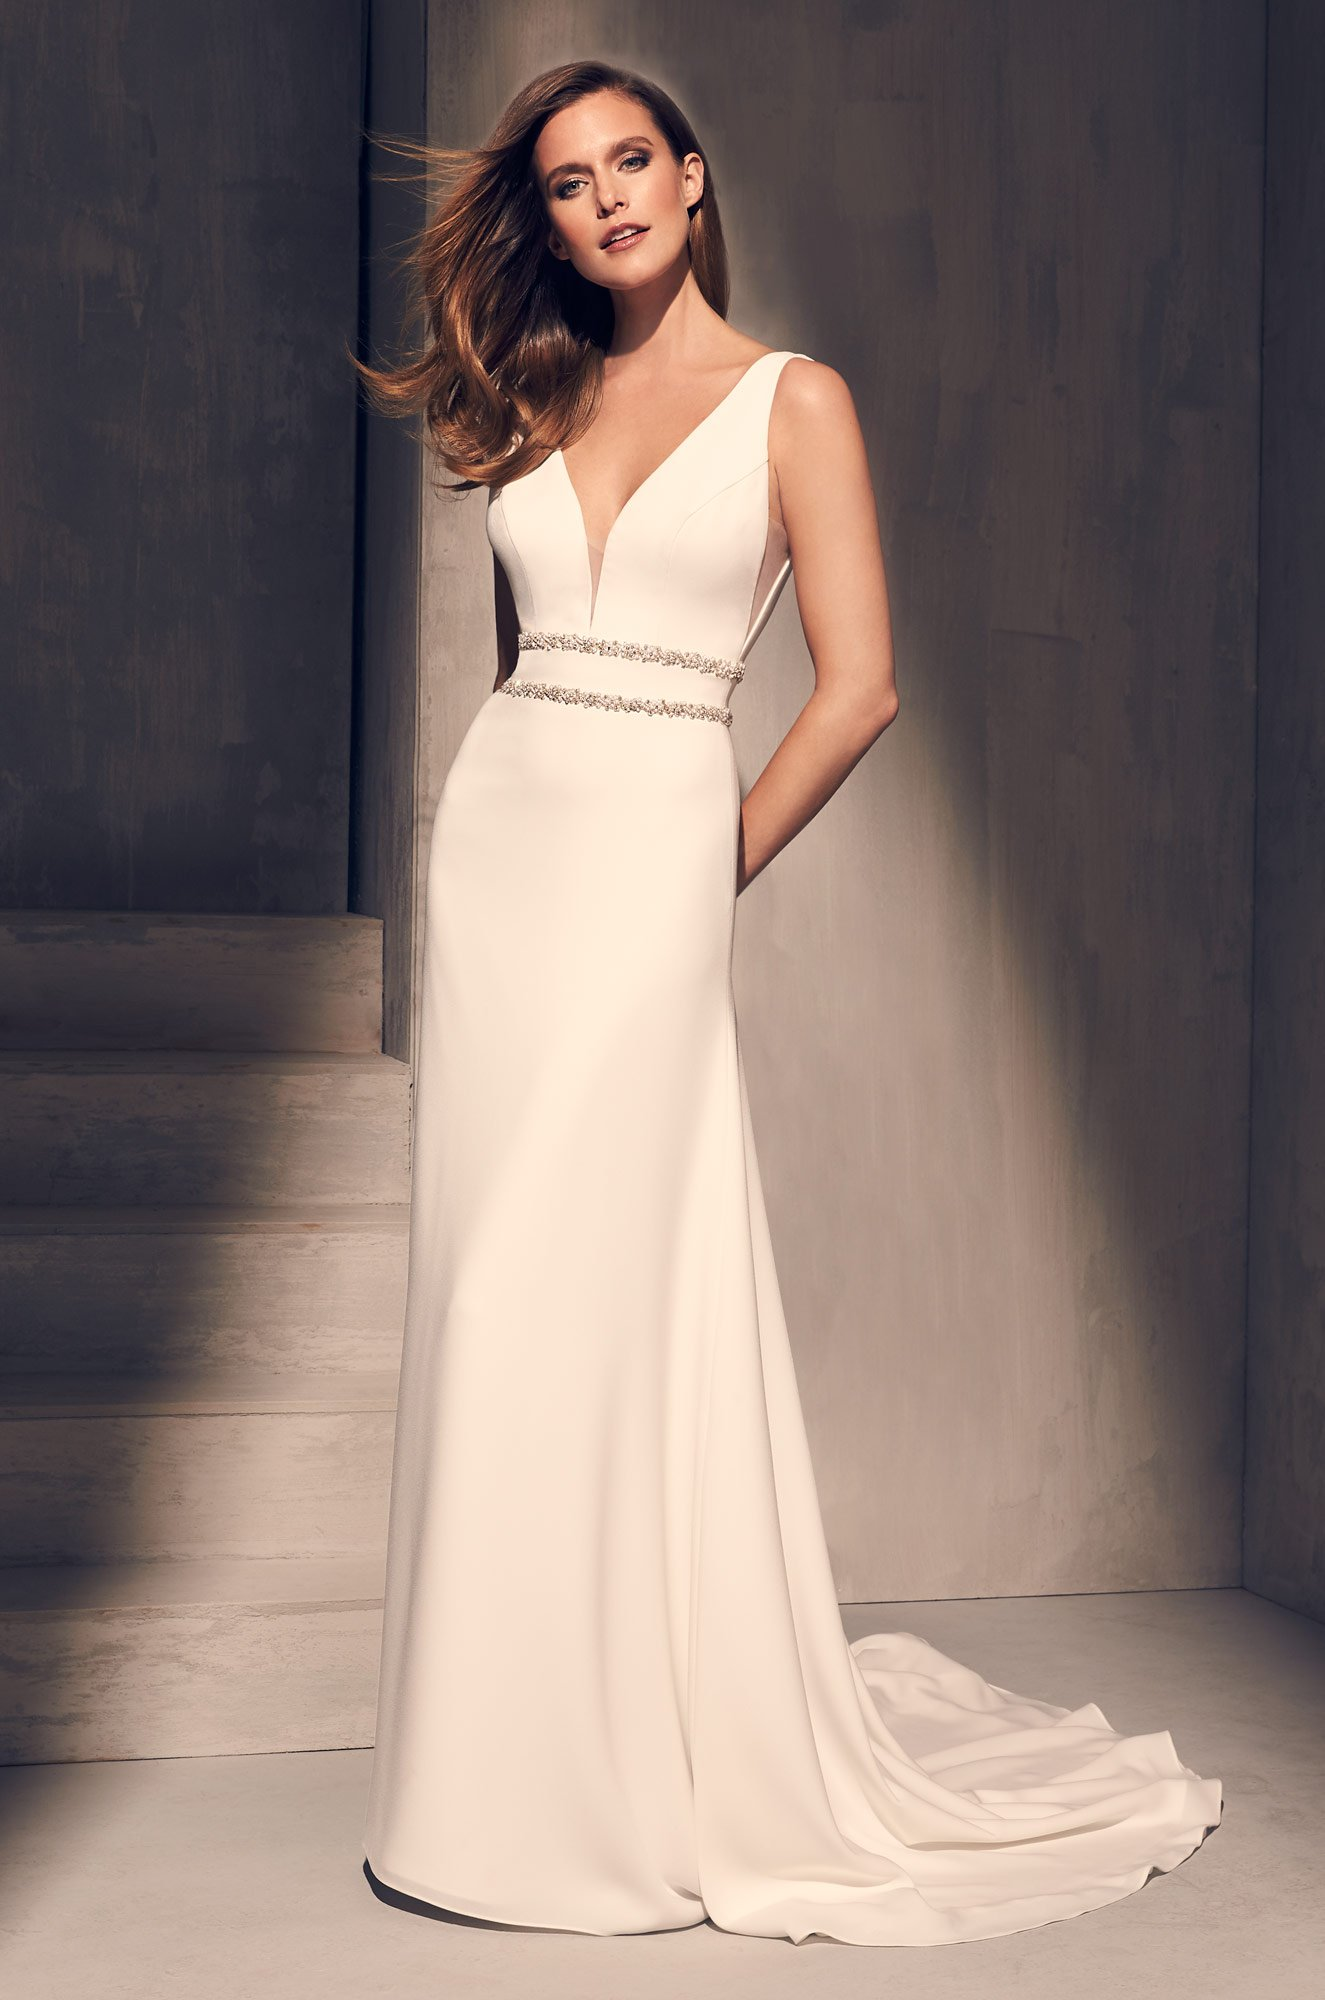 Dazzling Crêpe Wedding Dress – Style #2214 | Mikaella Bridal